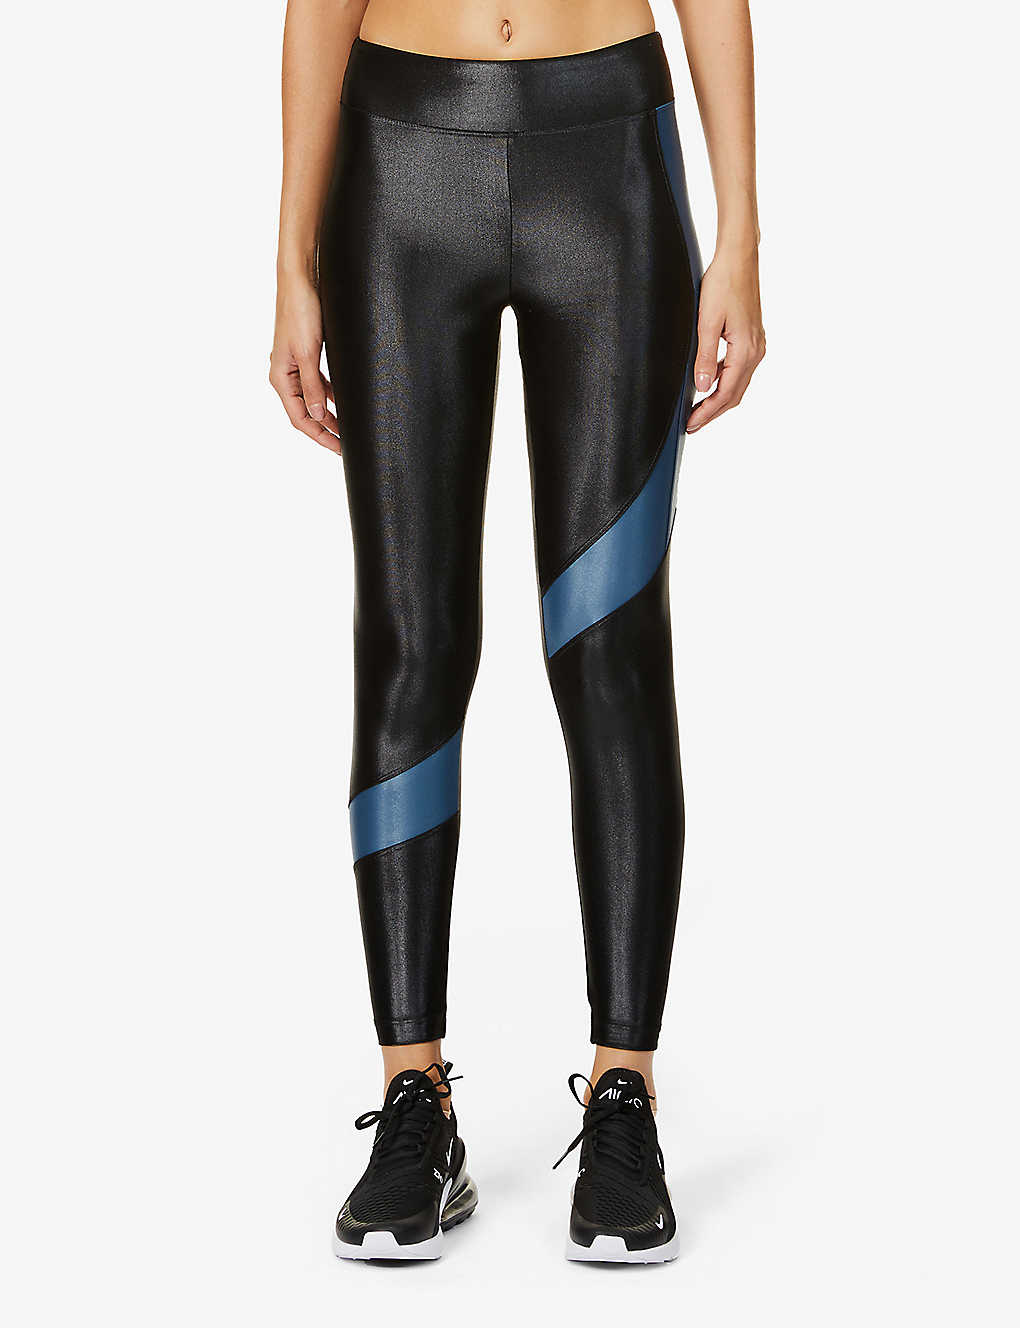 KORAL: Pista Infinity high-rise stretch-jersey leggings